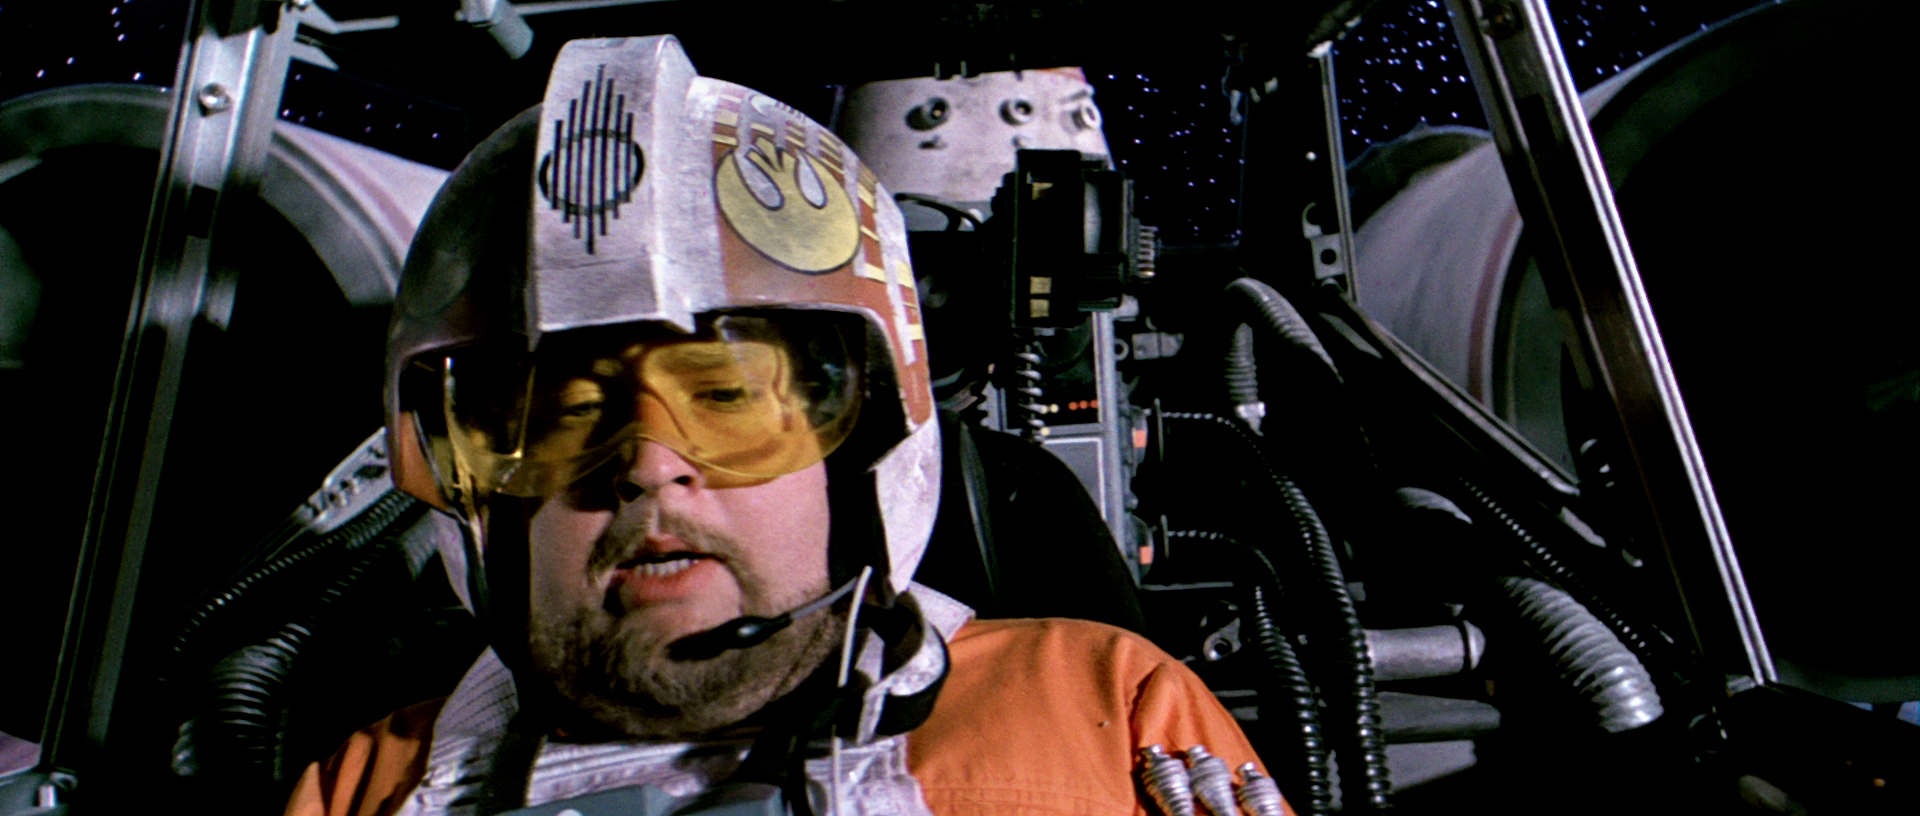 We need to talk about Porkins